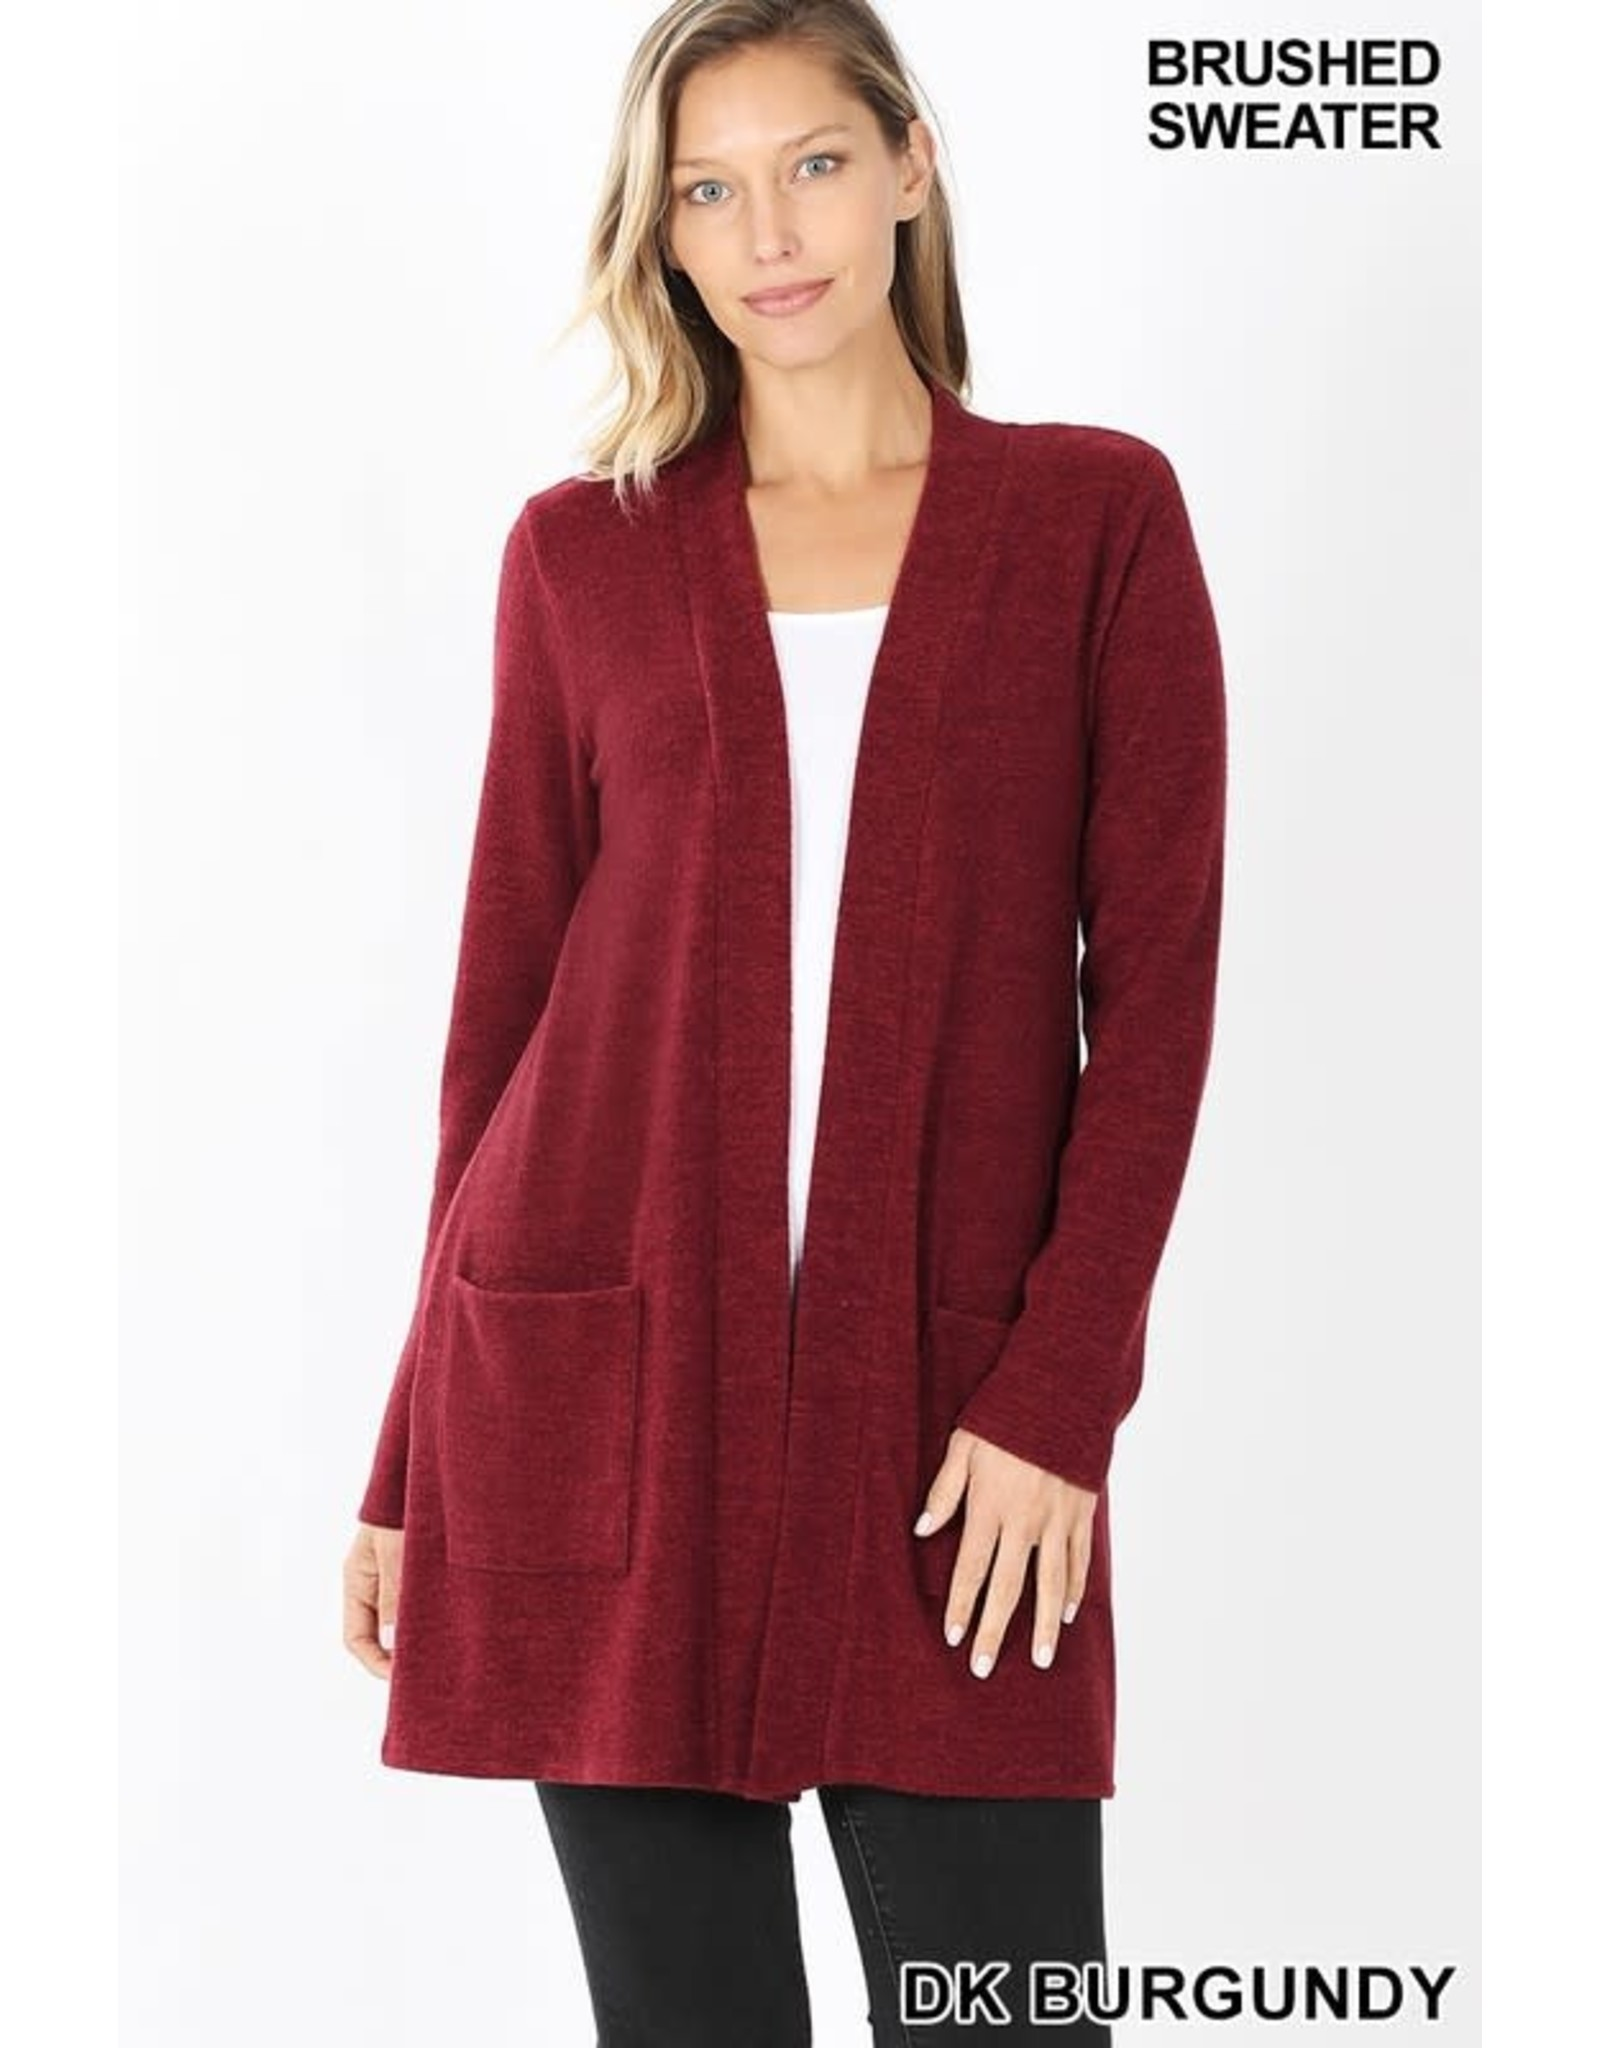 DK BURGUNDY OPEN FRONT BRUSHED FABRIC SWEATER W/ POCKETS